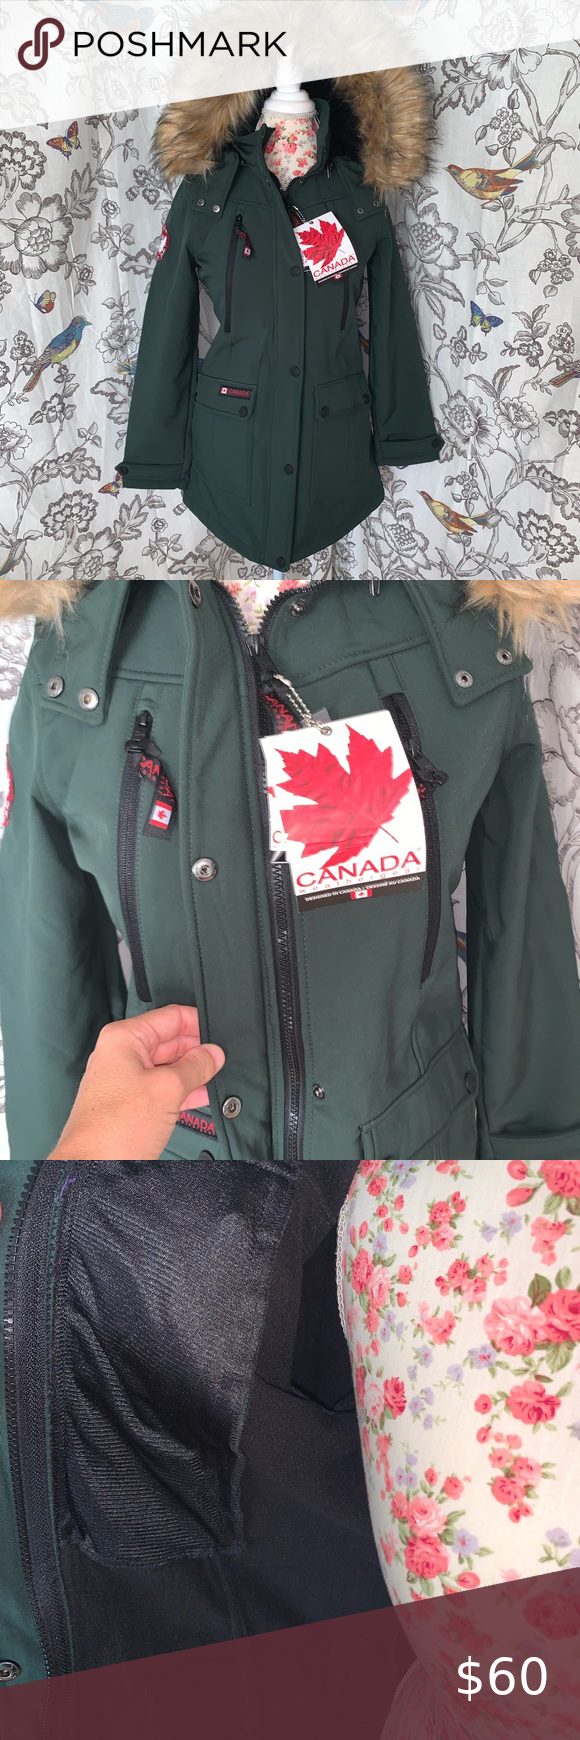 Canada Weather Gear Nwts Soft Shell Anorak In 2020 Clothes Design Anorak Fashion Design